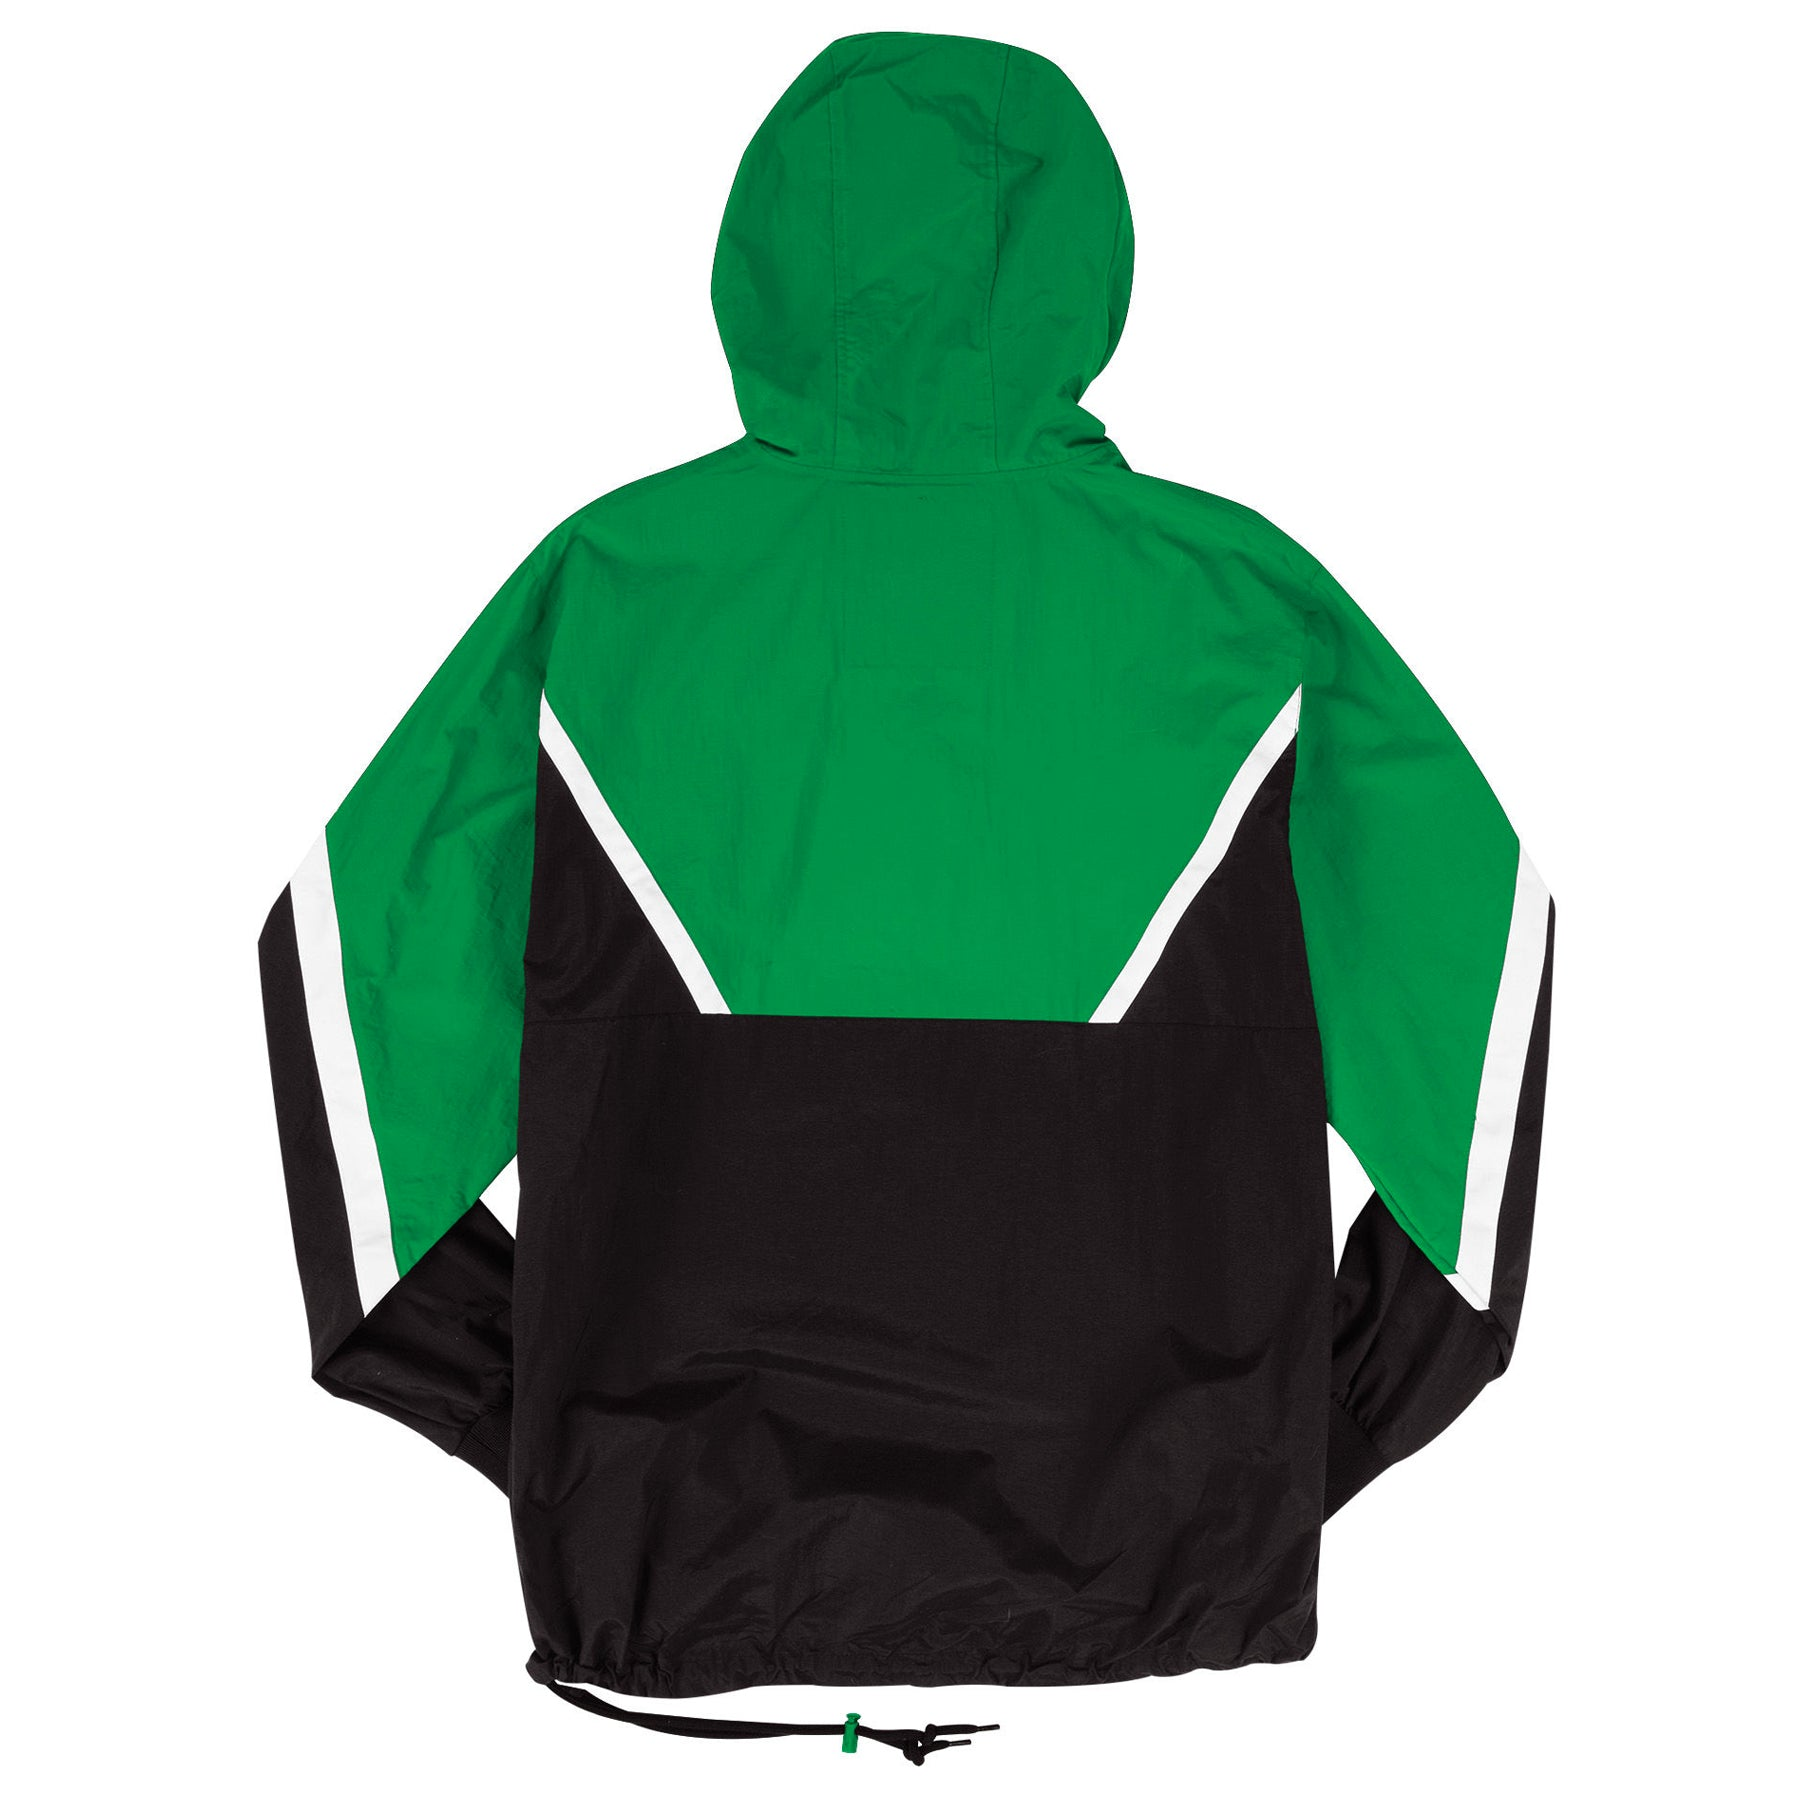 66789d1e4991 ... the throwback Philadelphia Eagles anorak jacket is kelly green and black  with white accents